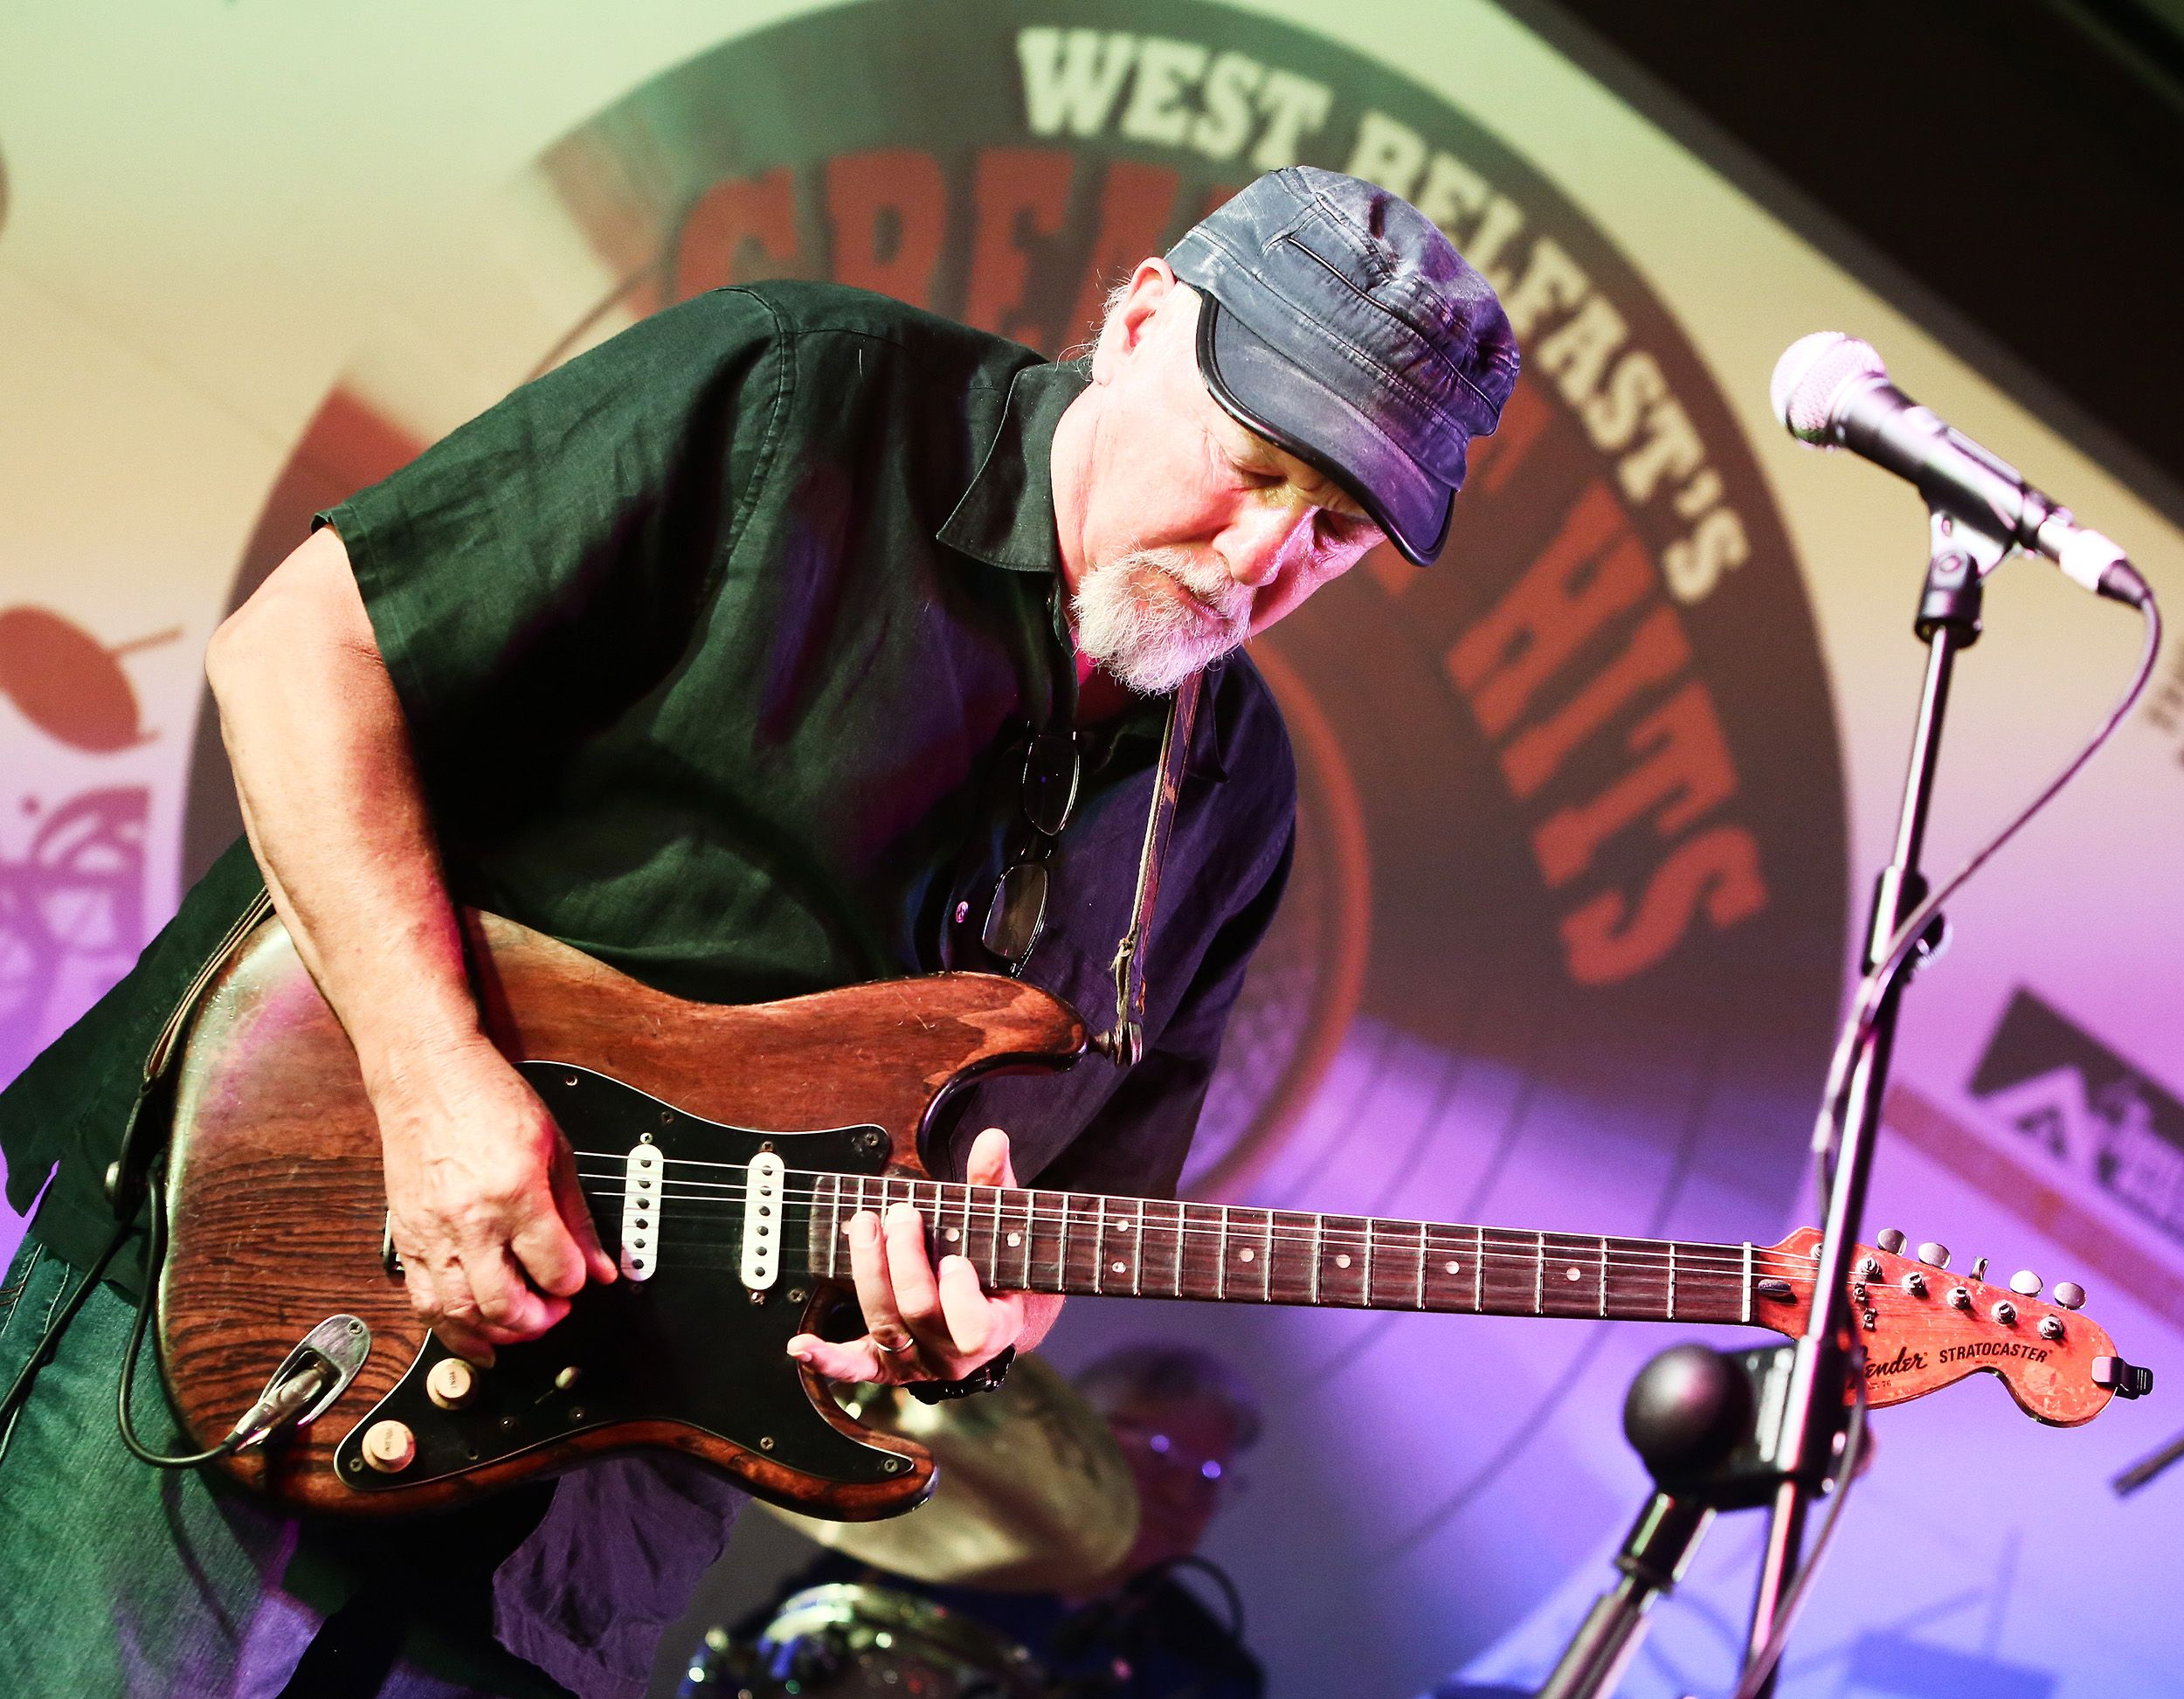 ON FORM: Guitarist Rab McCullough passed away at the weekend